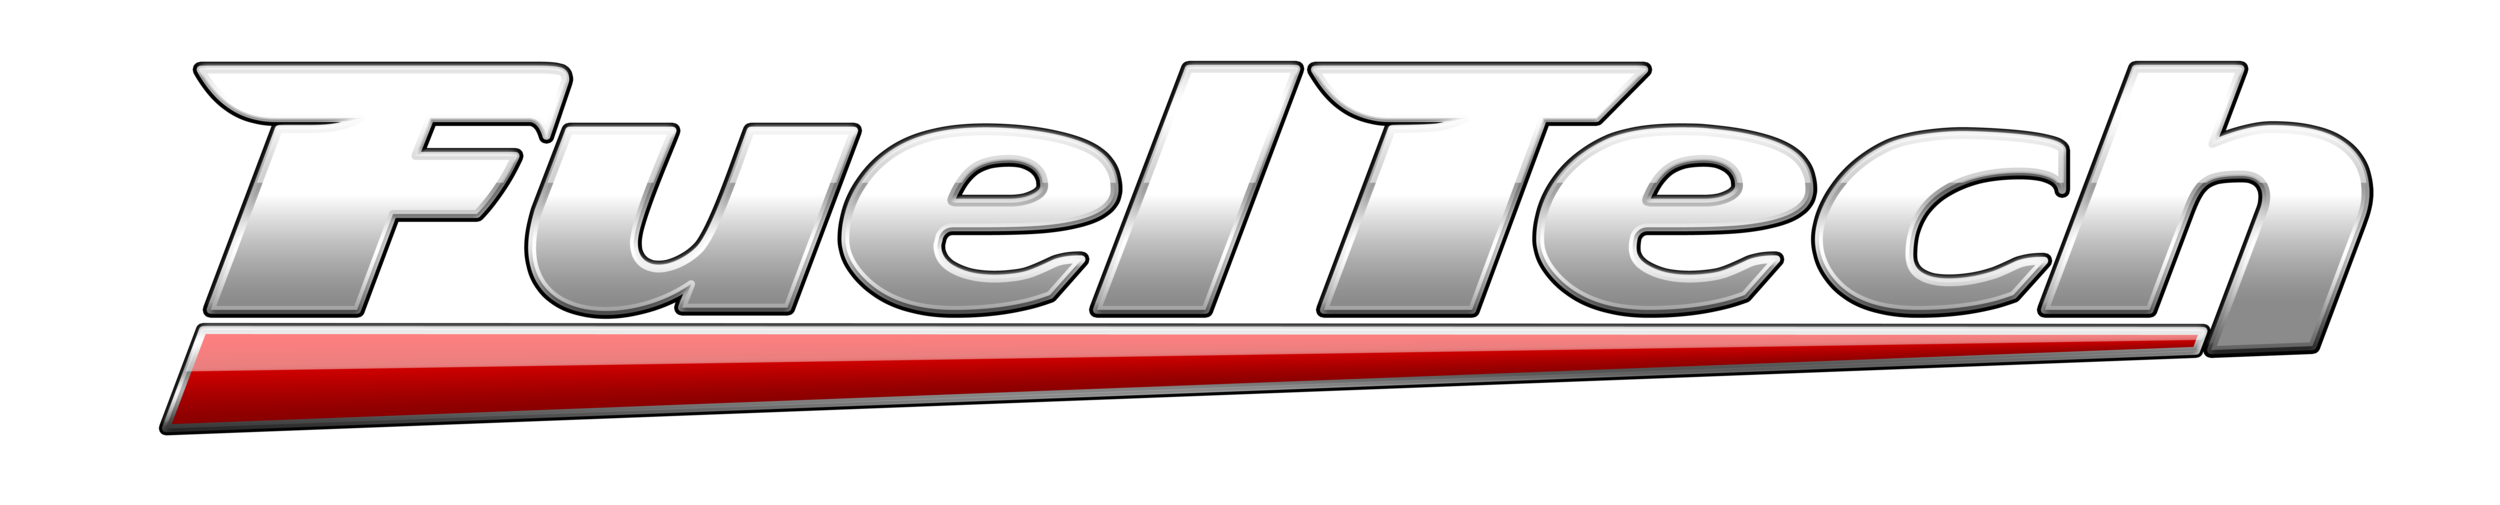 FuelTech - A leader in aftermarket EFI systems like the FT450, FT500, and FT600, FuelTech has made a name by being the EFI of choice for some of the worlds fastest cars, trucks, and much more. Address: 455 Wilbanks Dr. Ball Ground, GA. 30107 Phone: 678-493-3835 Email: Contact Link